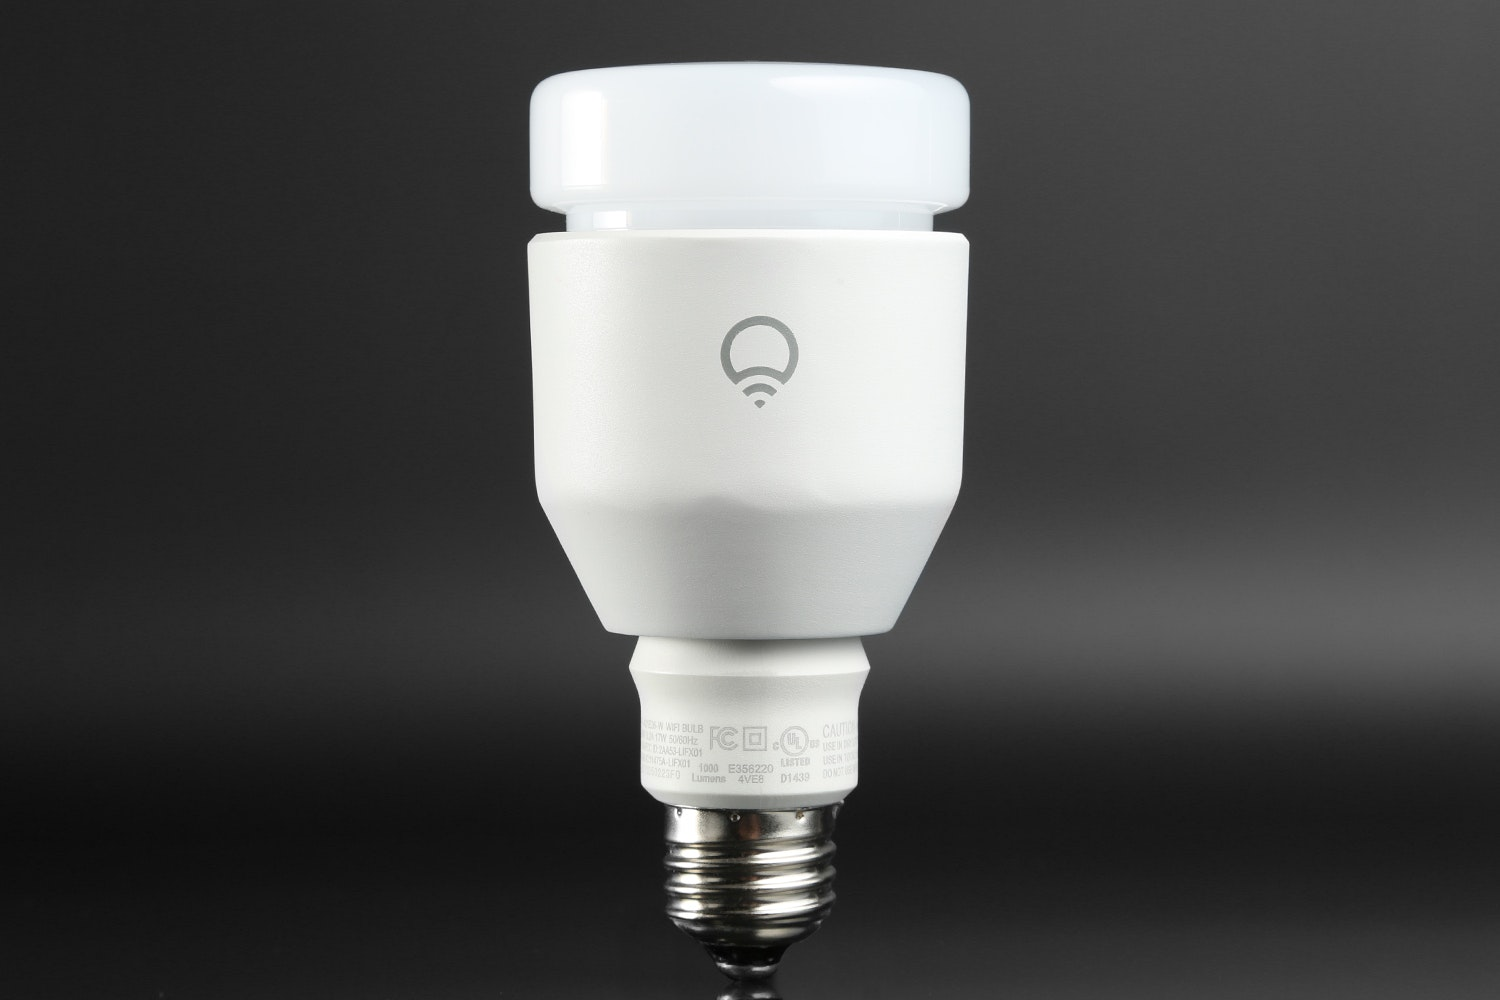 The Original Color Wi-Fi LED Smart Bulb by LIFX